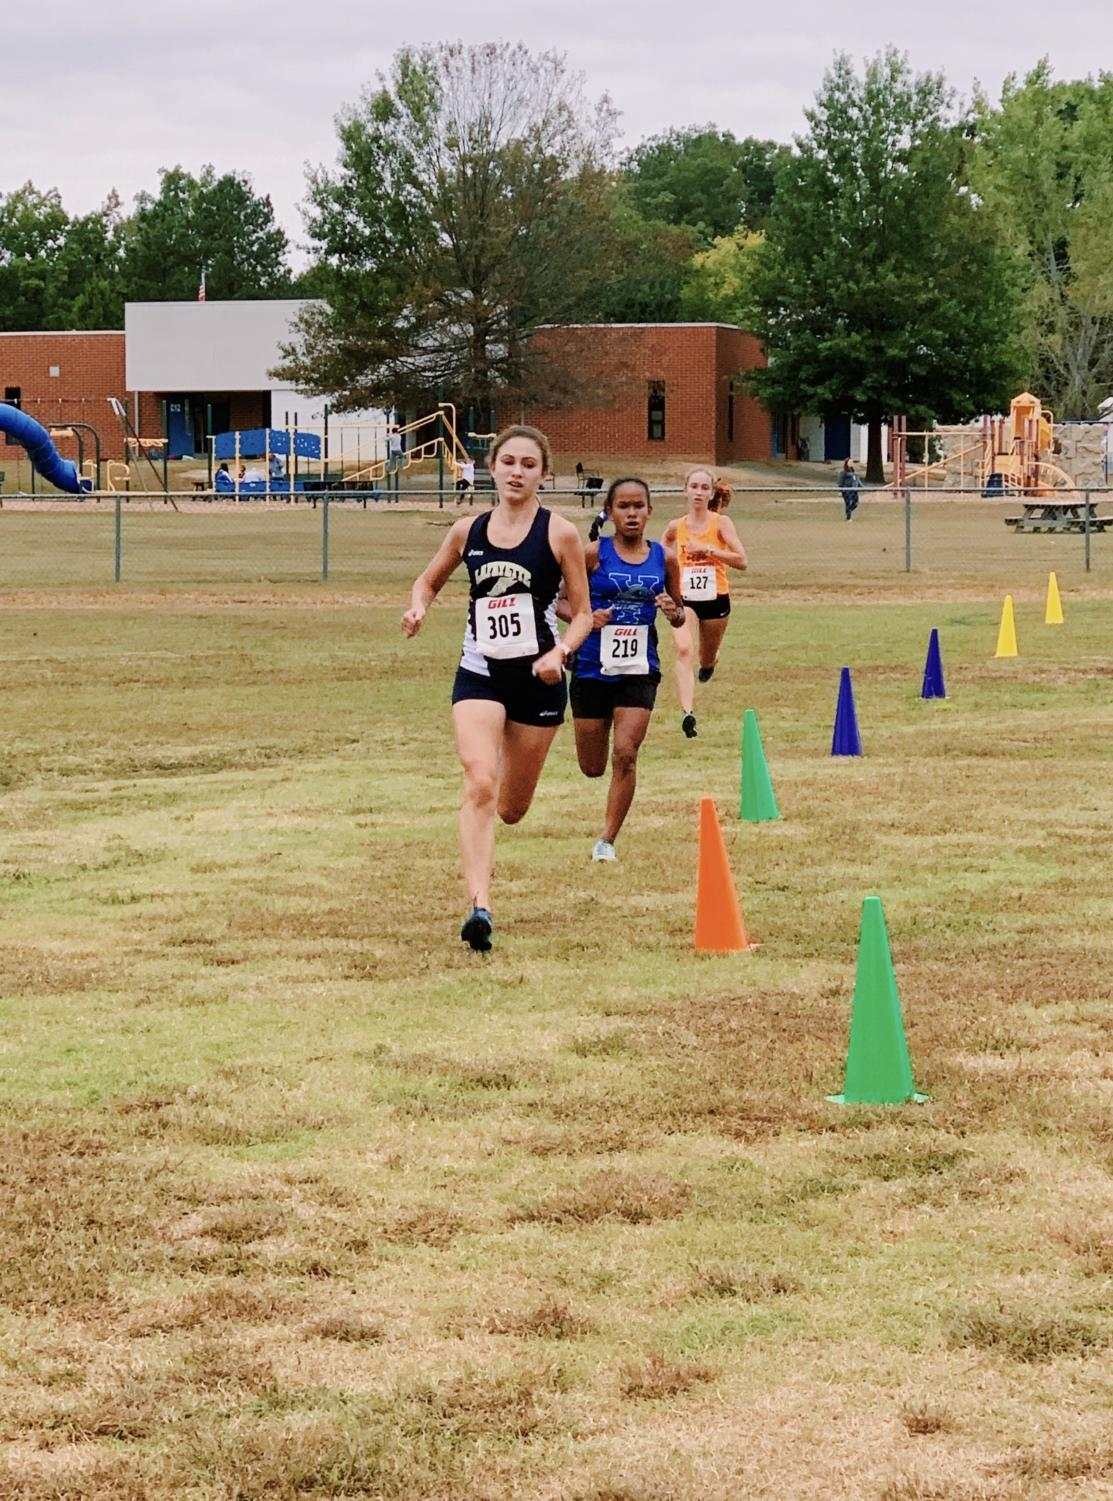 Senior Captain, Allison Crookston finishes strong at the end of the long race. A York runner tries to beat Allison in the final stretch, but Allison was able to out kick her.